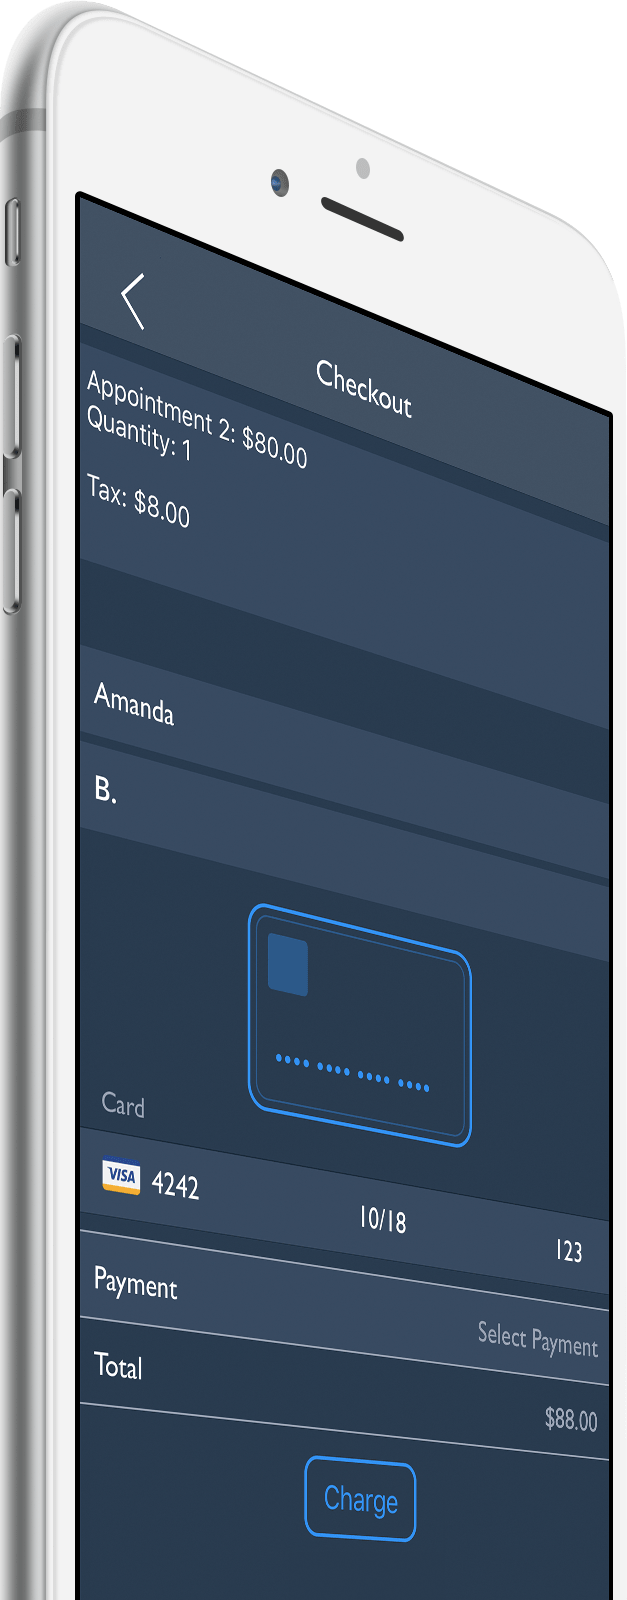 Stride app accept credit cards